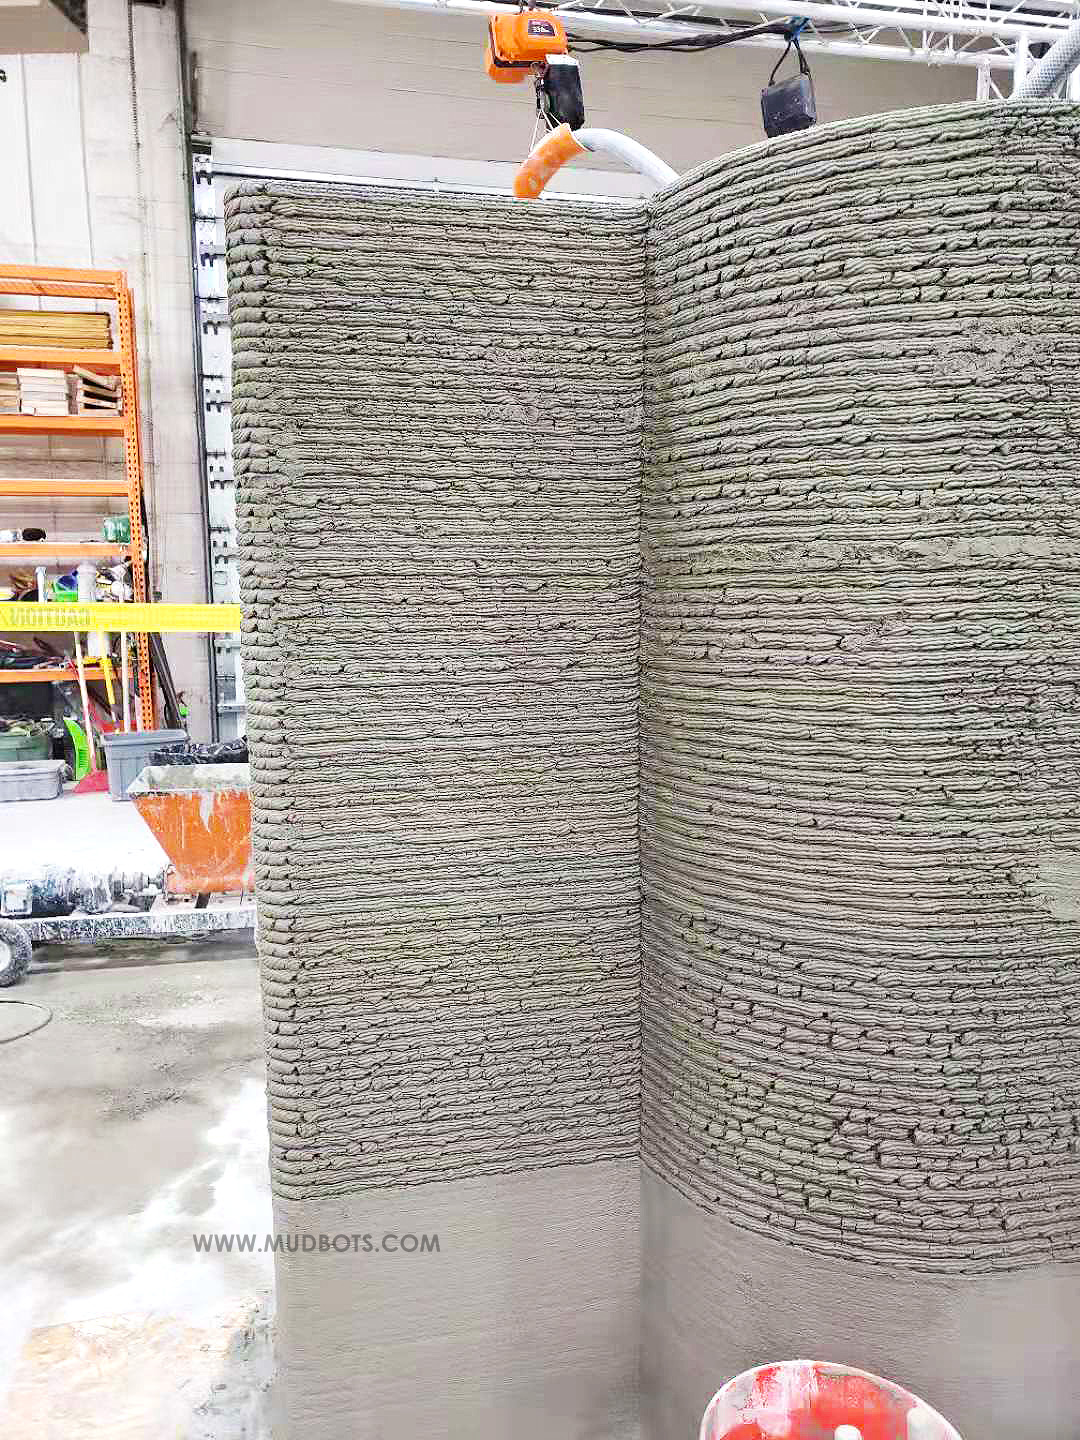 Build concrete walls of different sizes and shapes using 3DCP technology